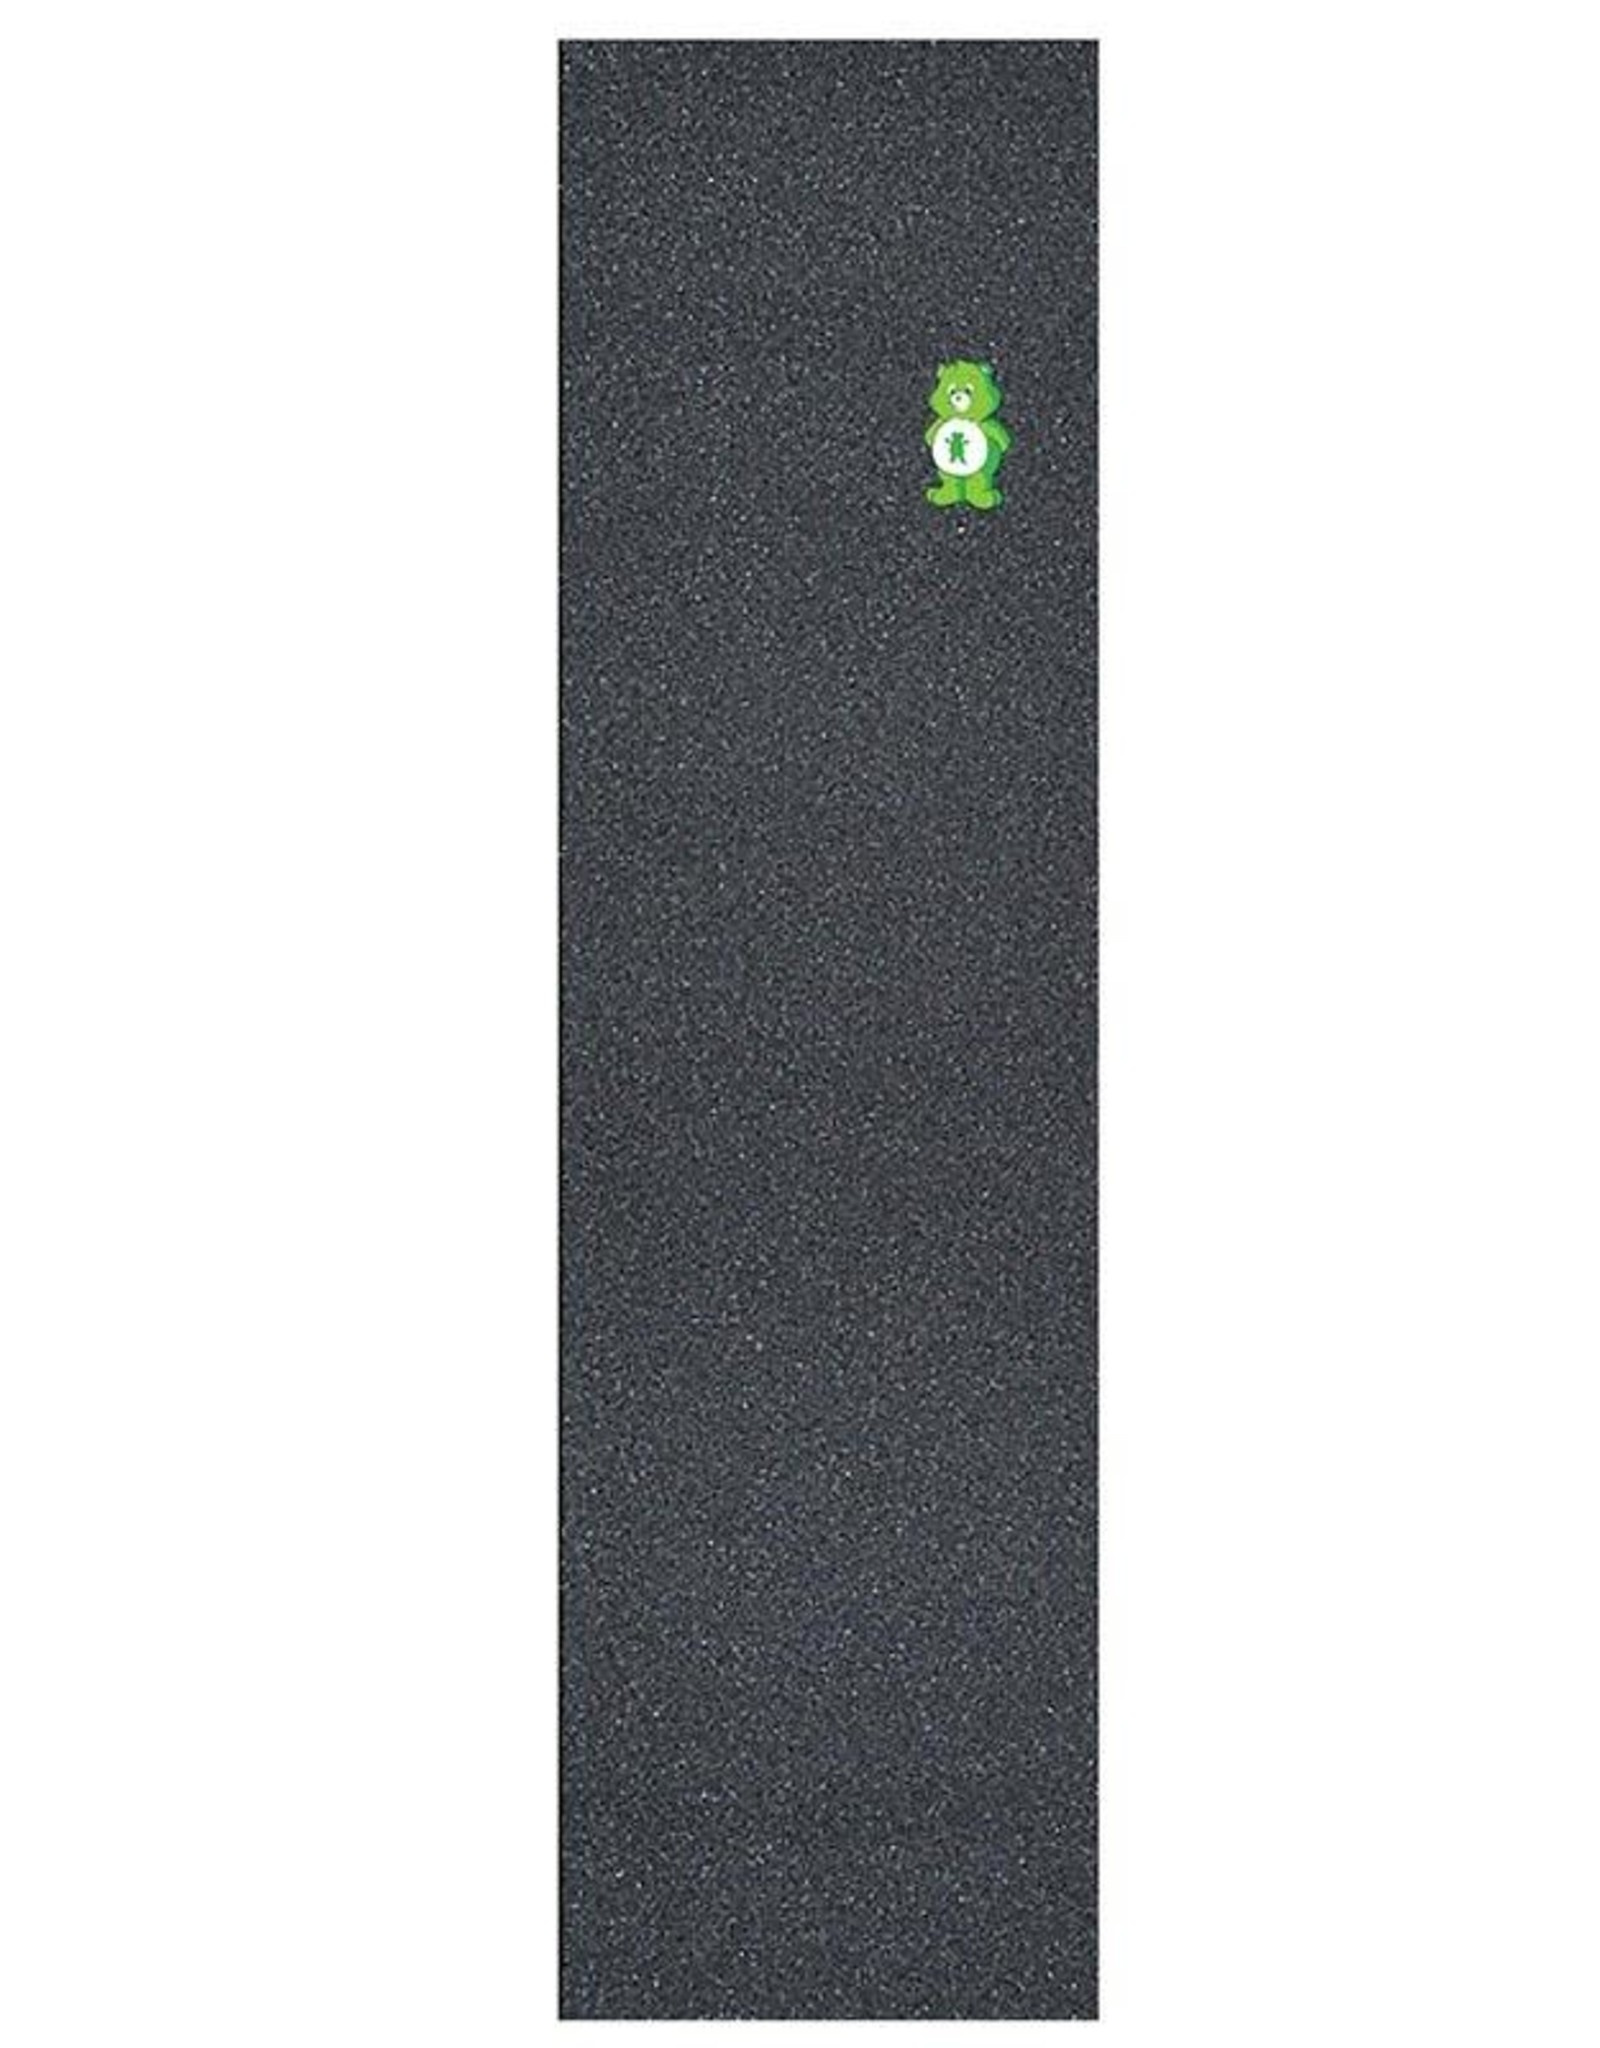 GRIZZLY GRIZZLY GRIP SHEET POSITIVE OG BEAR GREEN